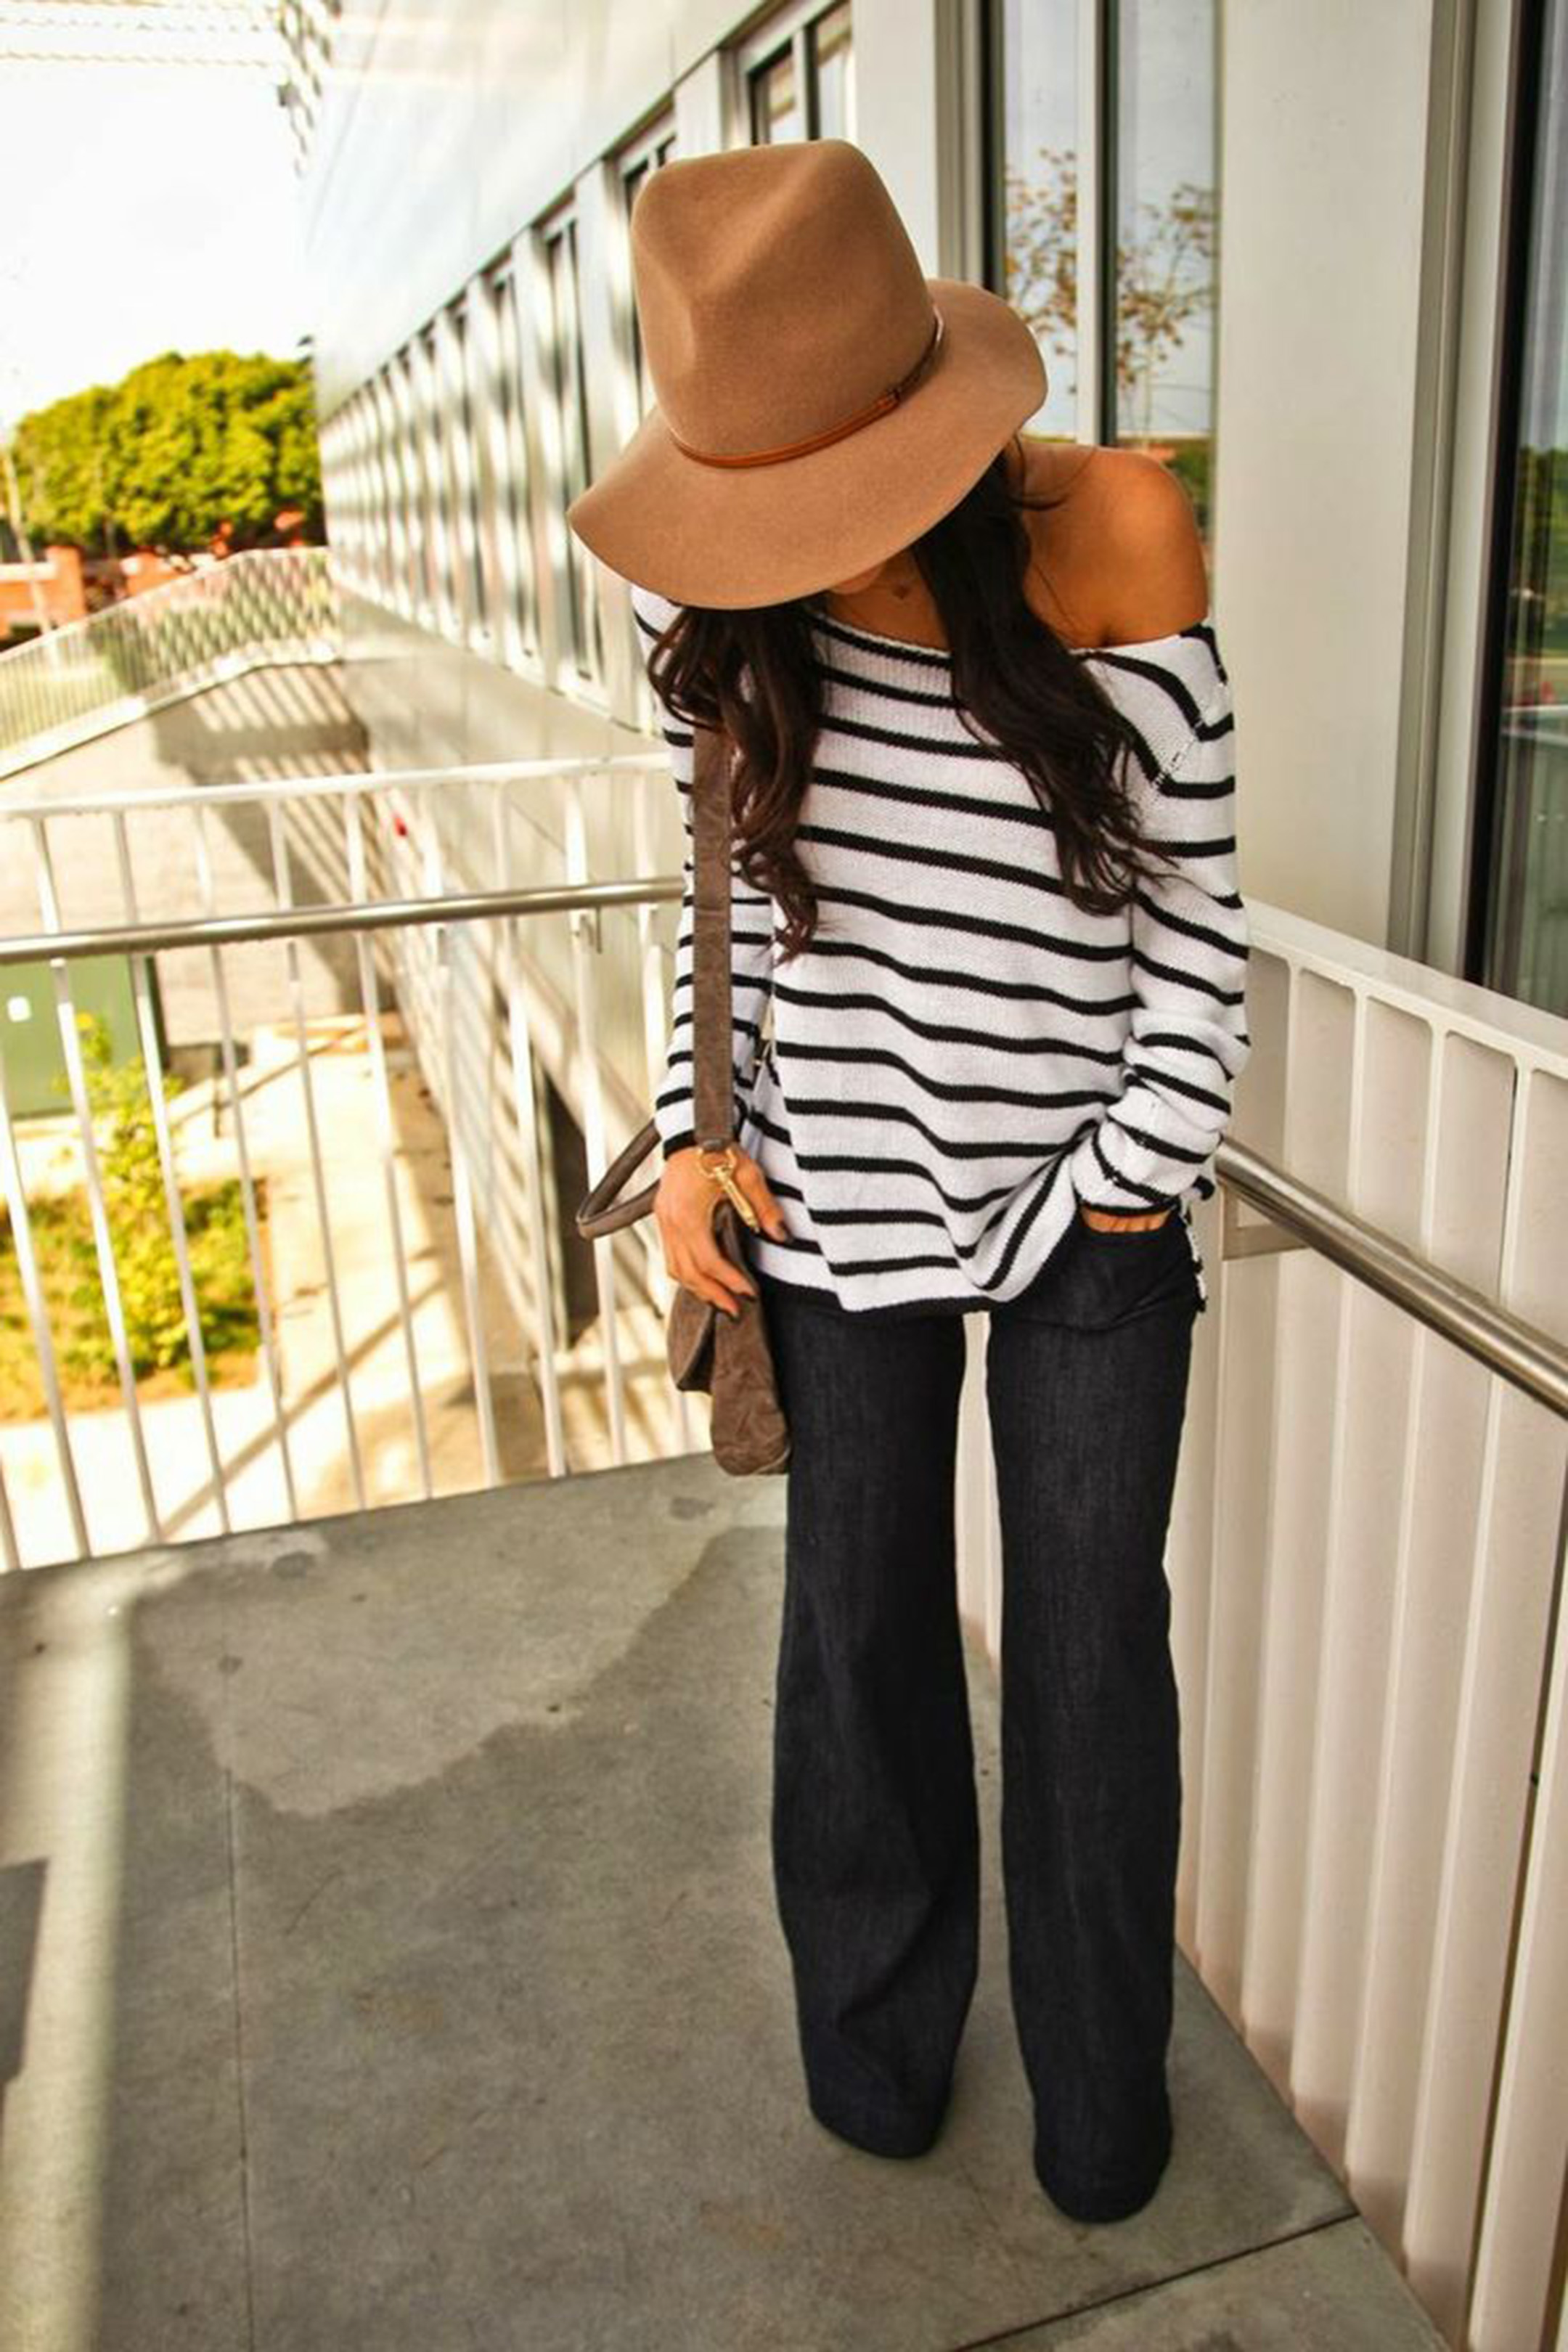 styleshouts-oversized-sweater-and-flared-jeans